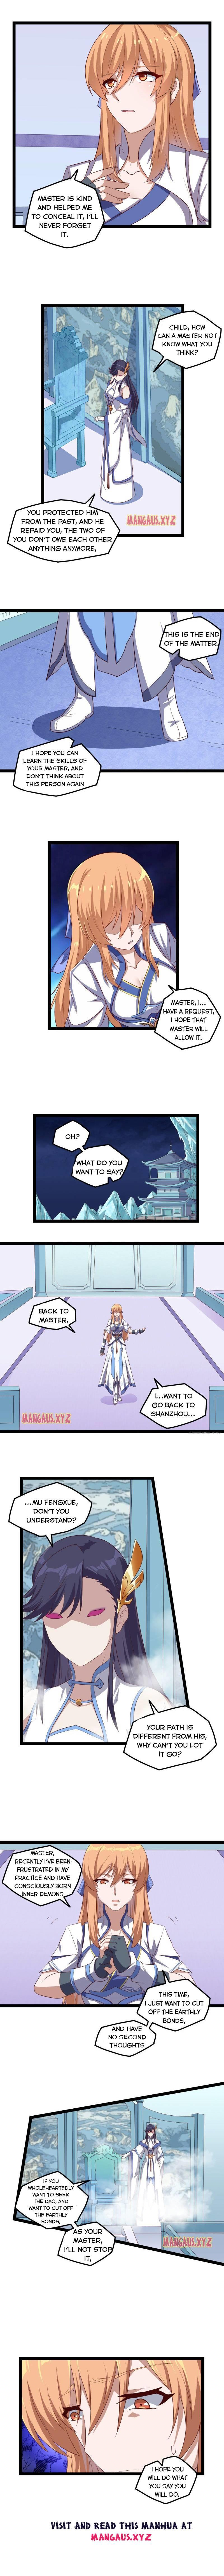 Trample On The River Of Immortality Chapter 165 page 3 - Mangakakalots.com